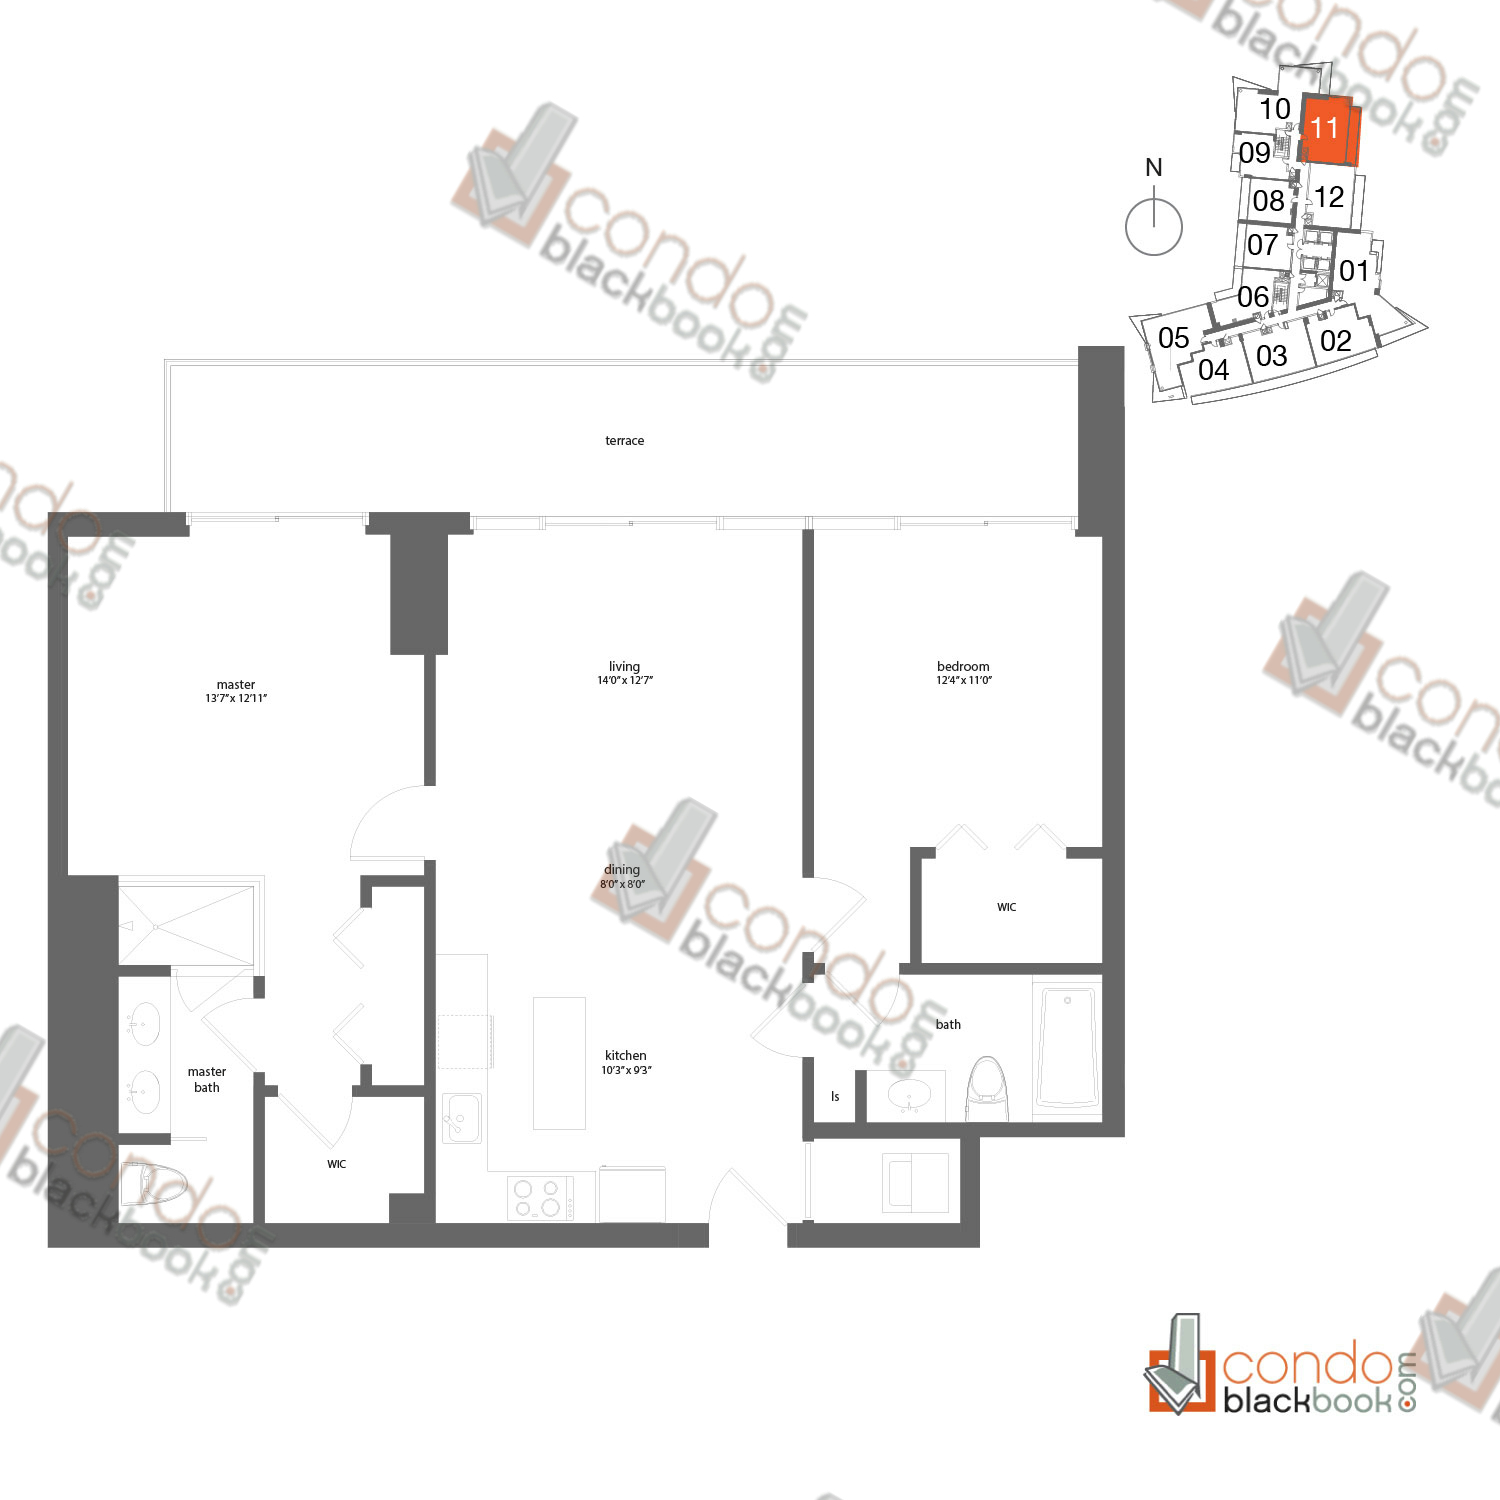 Floor plan for Mint Miami River Miami, model 11, line 11, 2/2 bedrooms, 1,118 sq ft